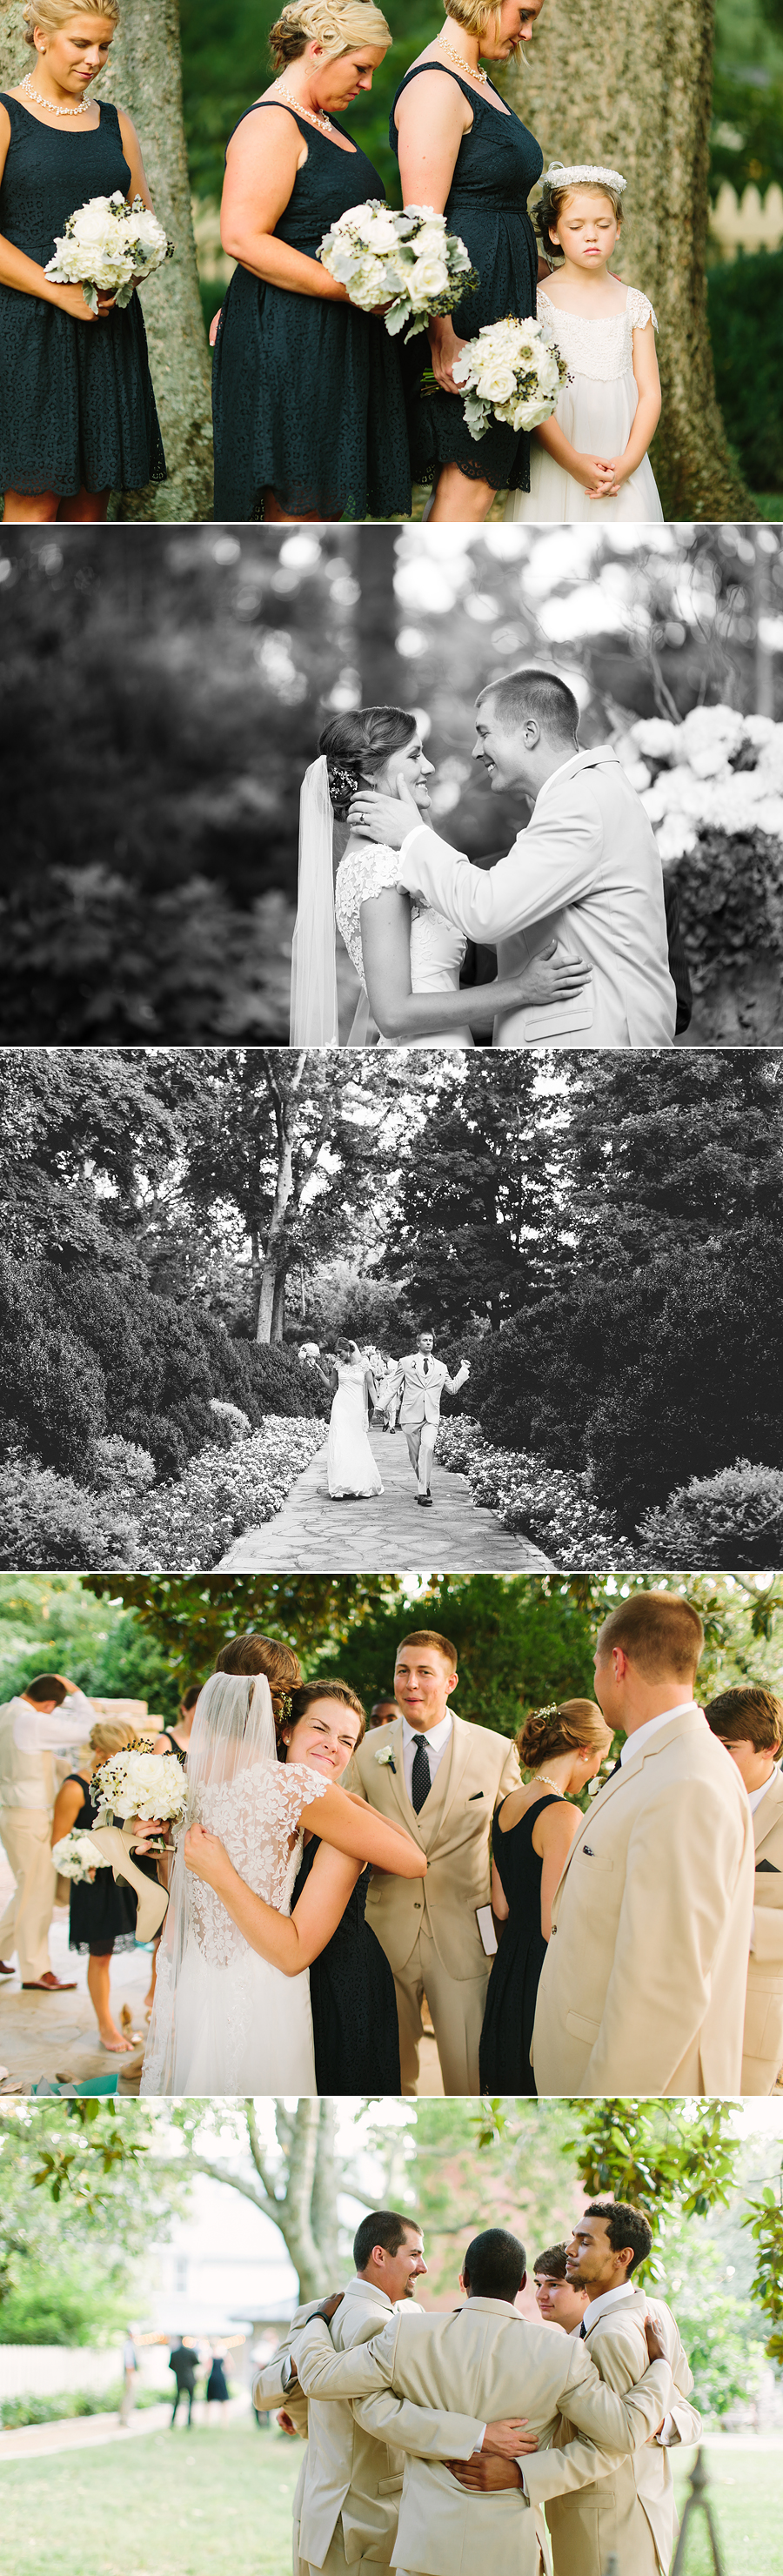 Belle_Meade_Plantation_Wedding_8